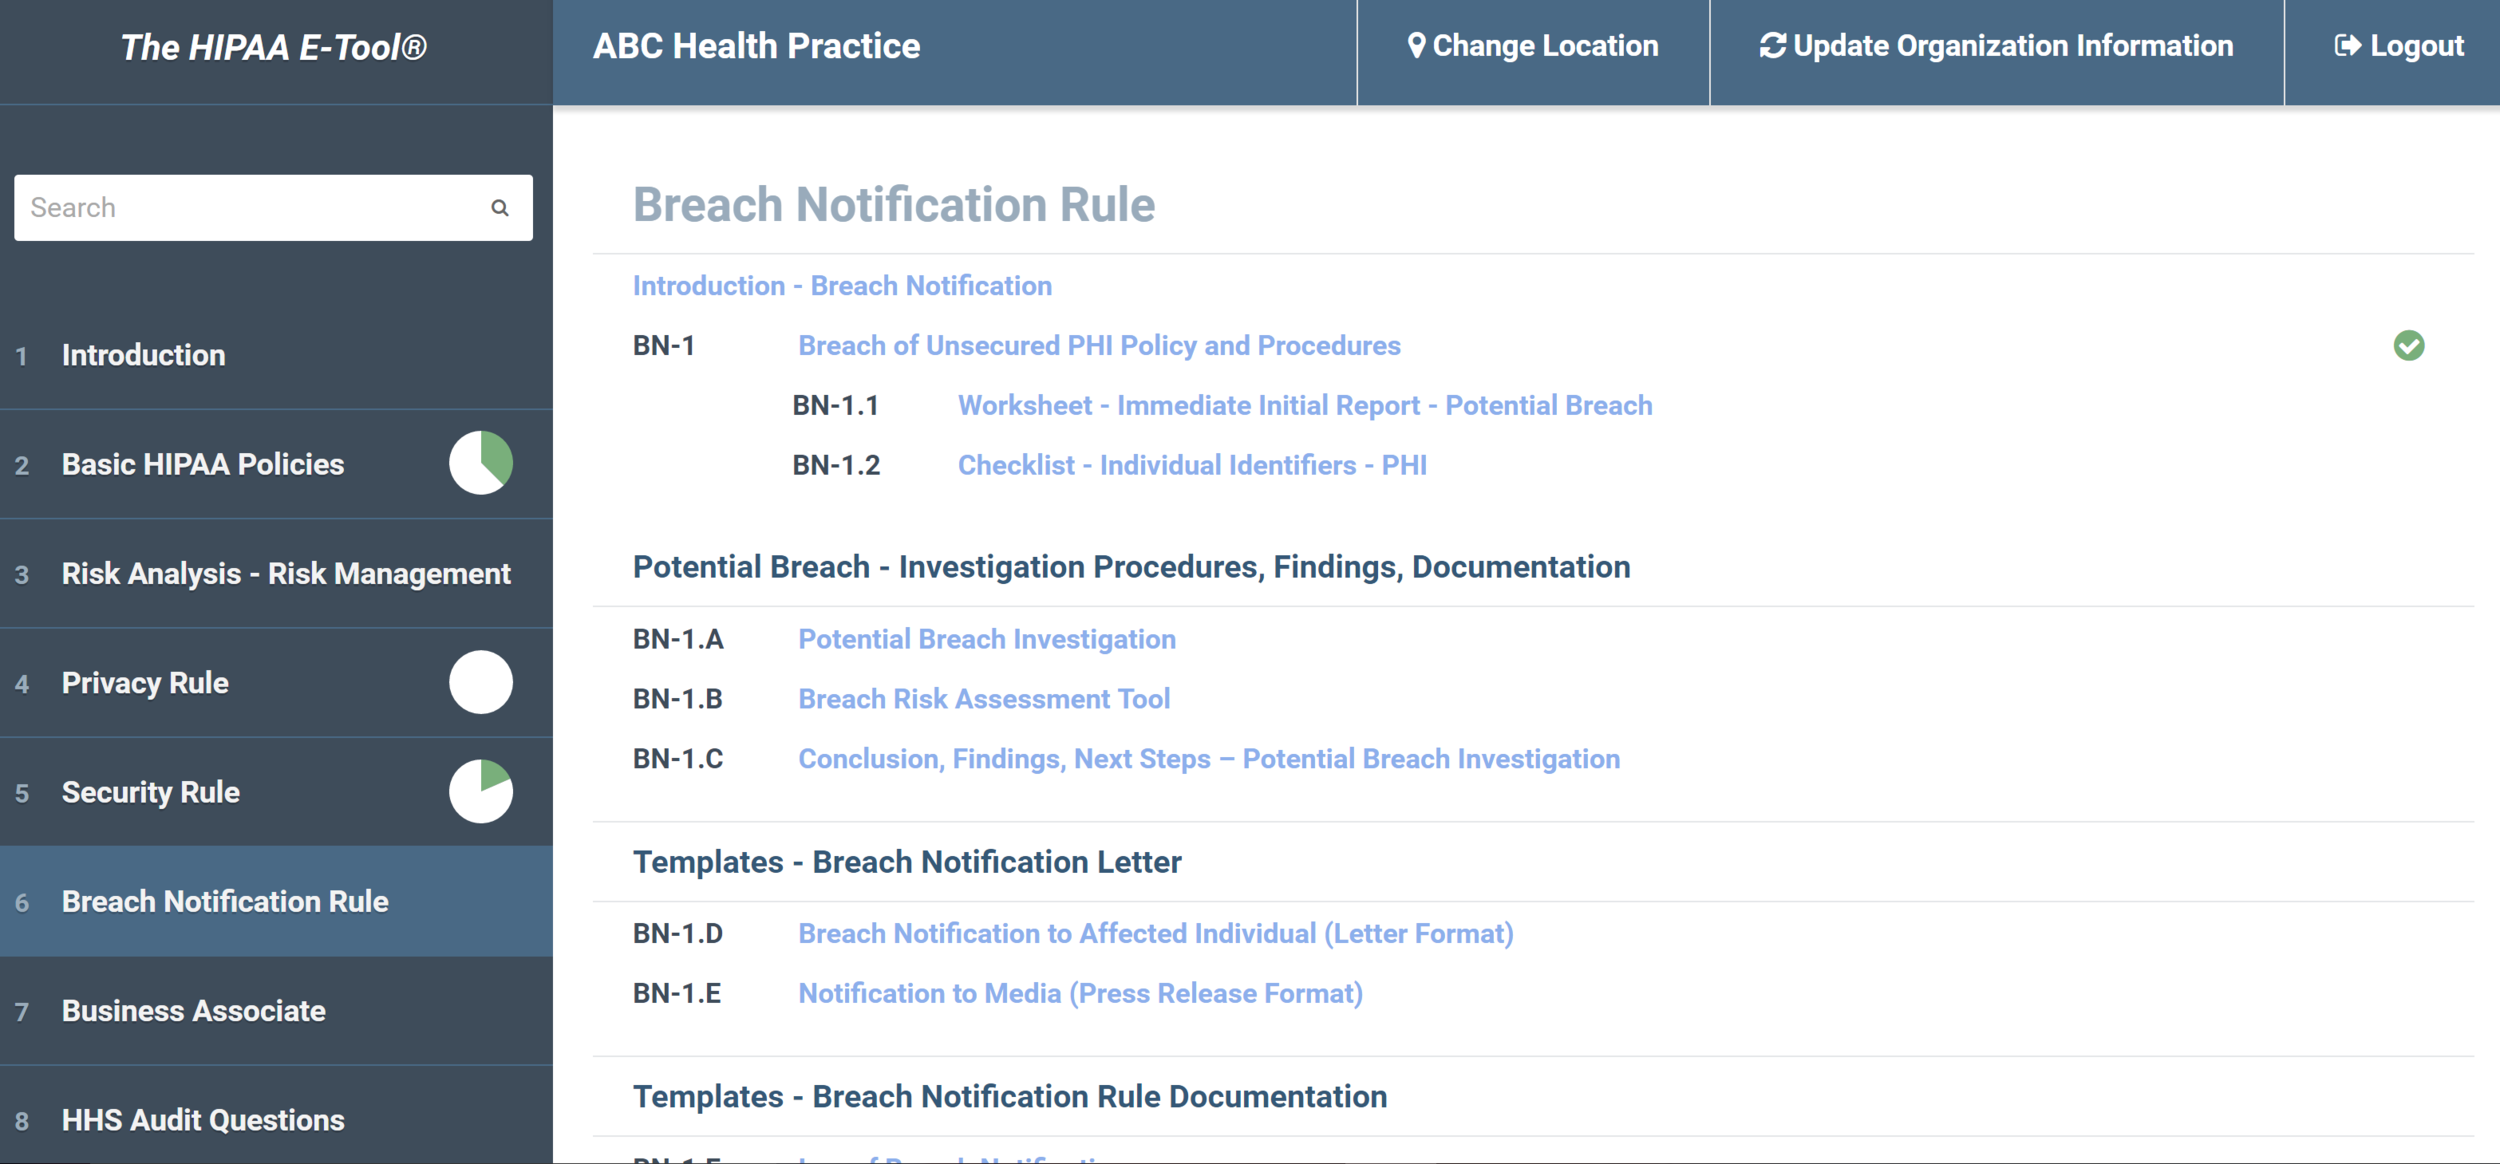 Step-by-step guidance of how to identify, investigate, and respond to a breach.